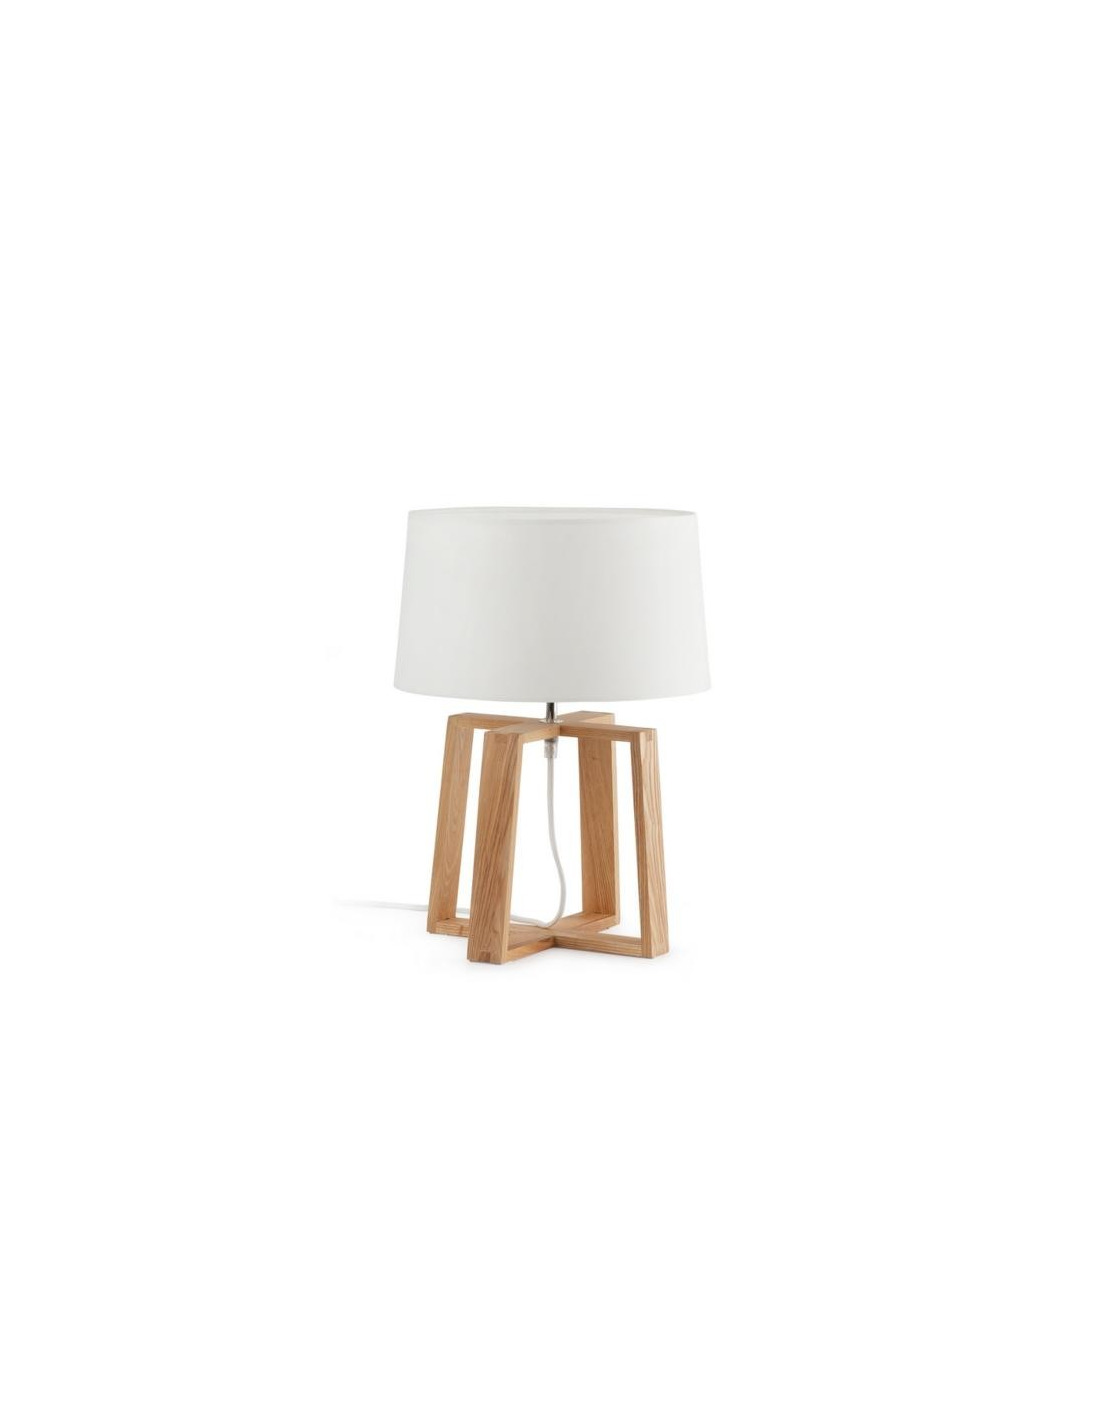 lampe poser kia en bois au design scandinave et moderne. Black Bedroom Furniture Sets. Home Design Ideas